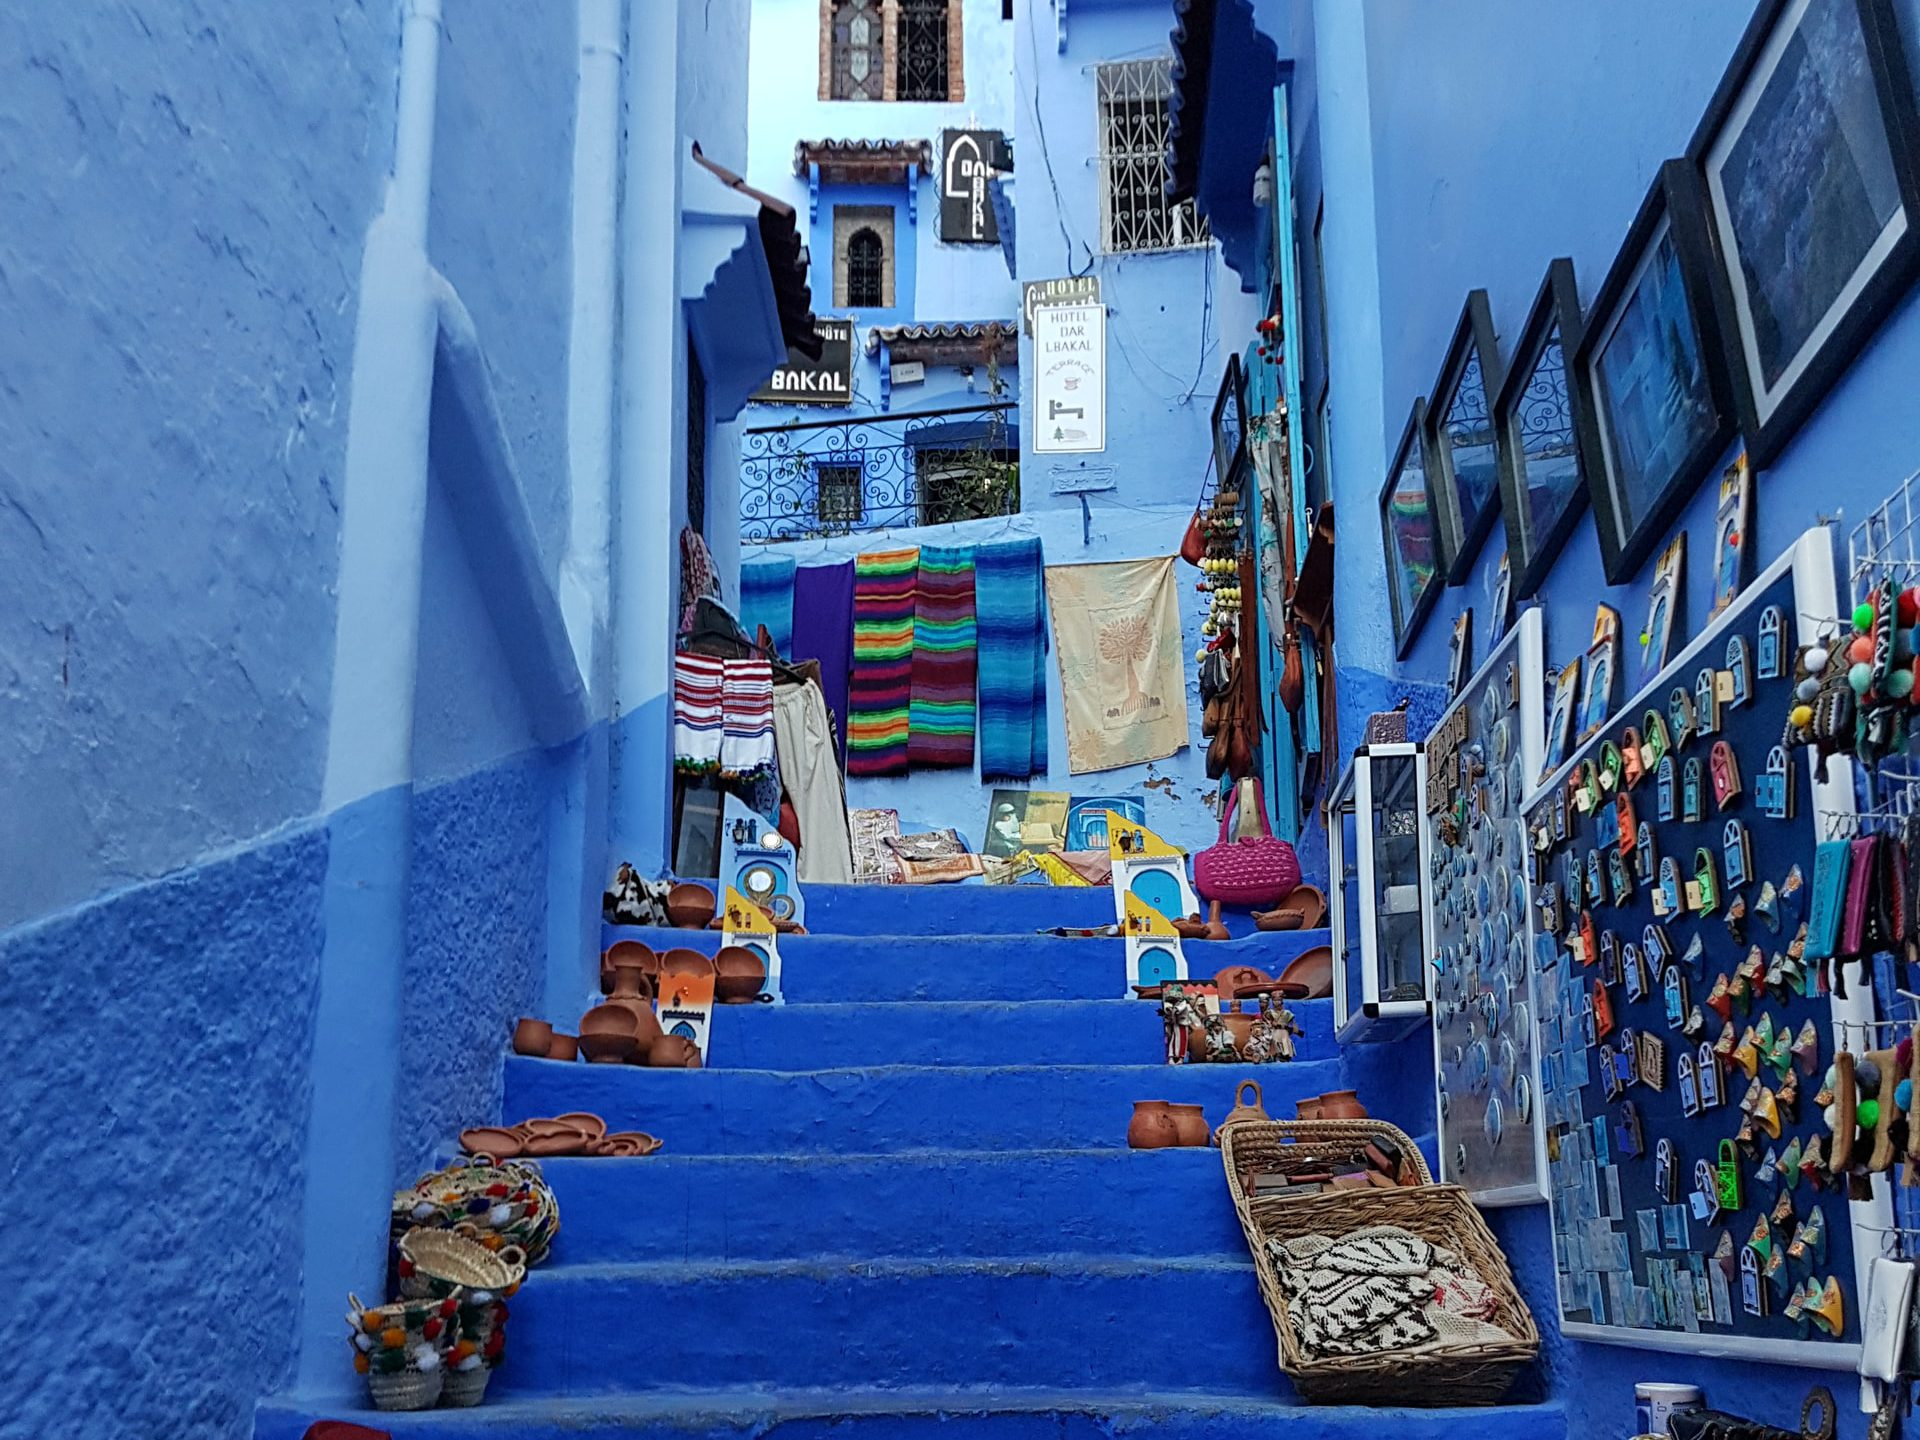 Try adding Morocco to the list of the countries you want to visit